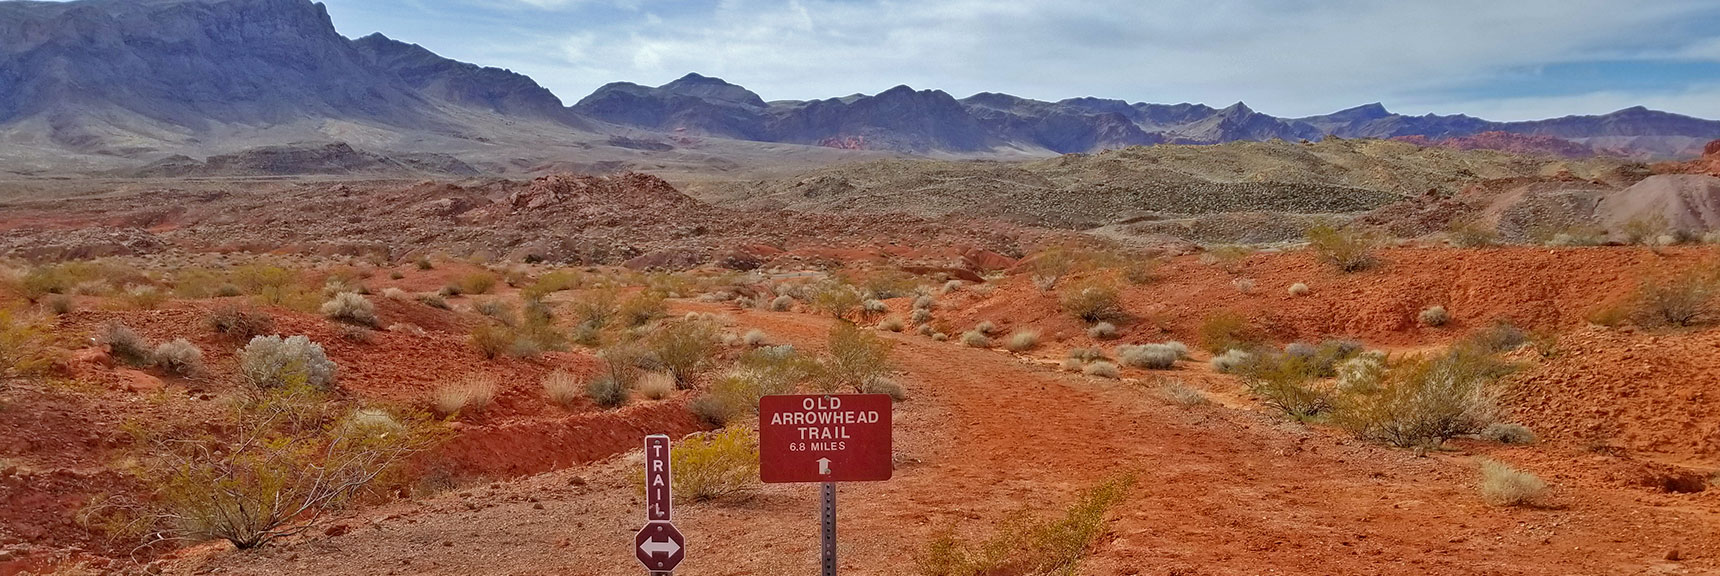 Returning to the Western Trailhead of Old Arrowhead Trail in Valley of Fire State Park, Nevada